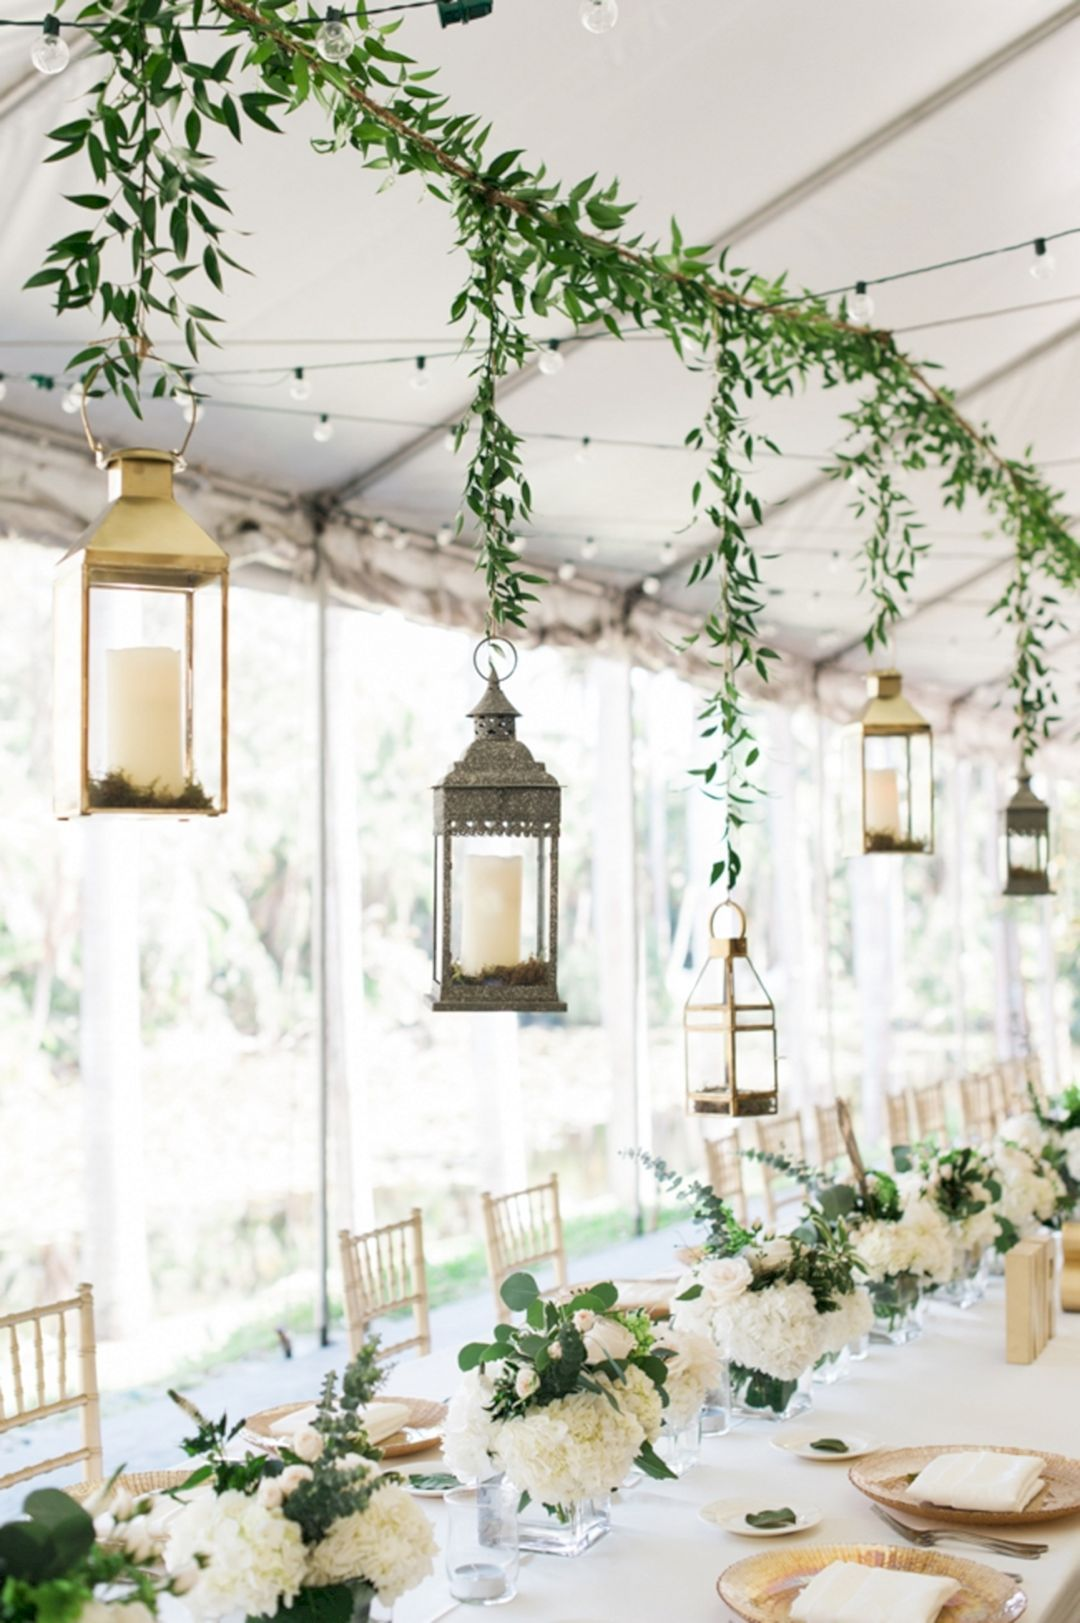 45+ Awesome Lantern Greenery Wedding Centerpiece Ideas | Greenery ...